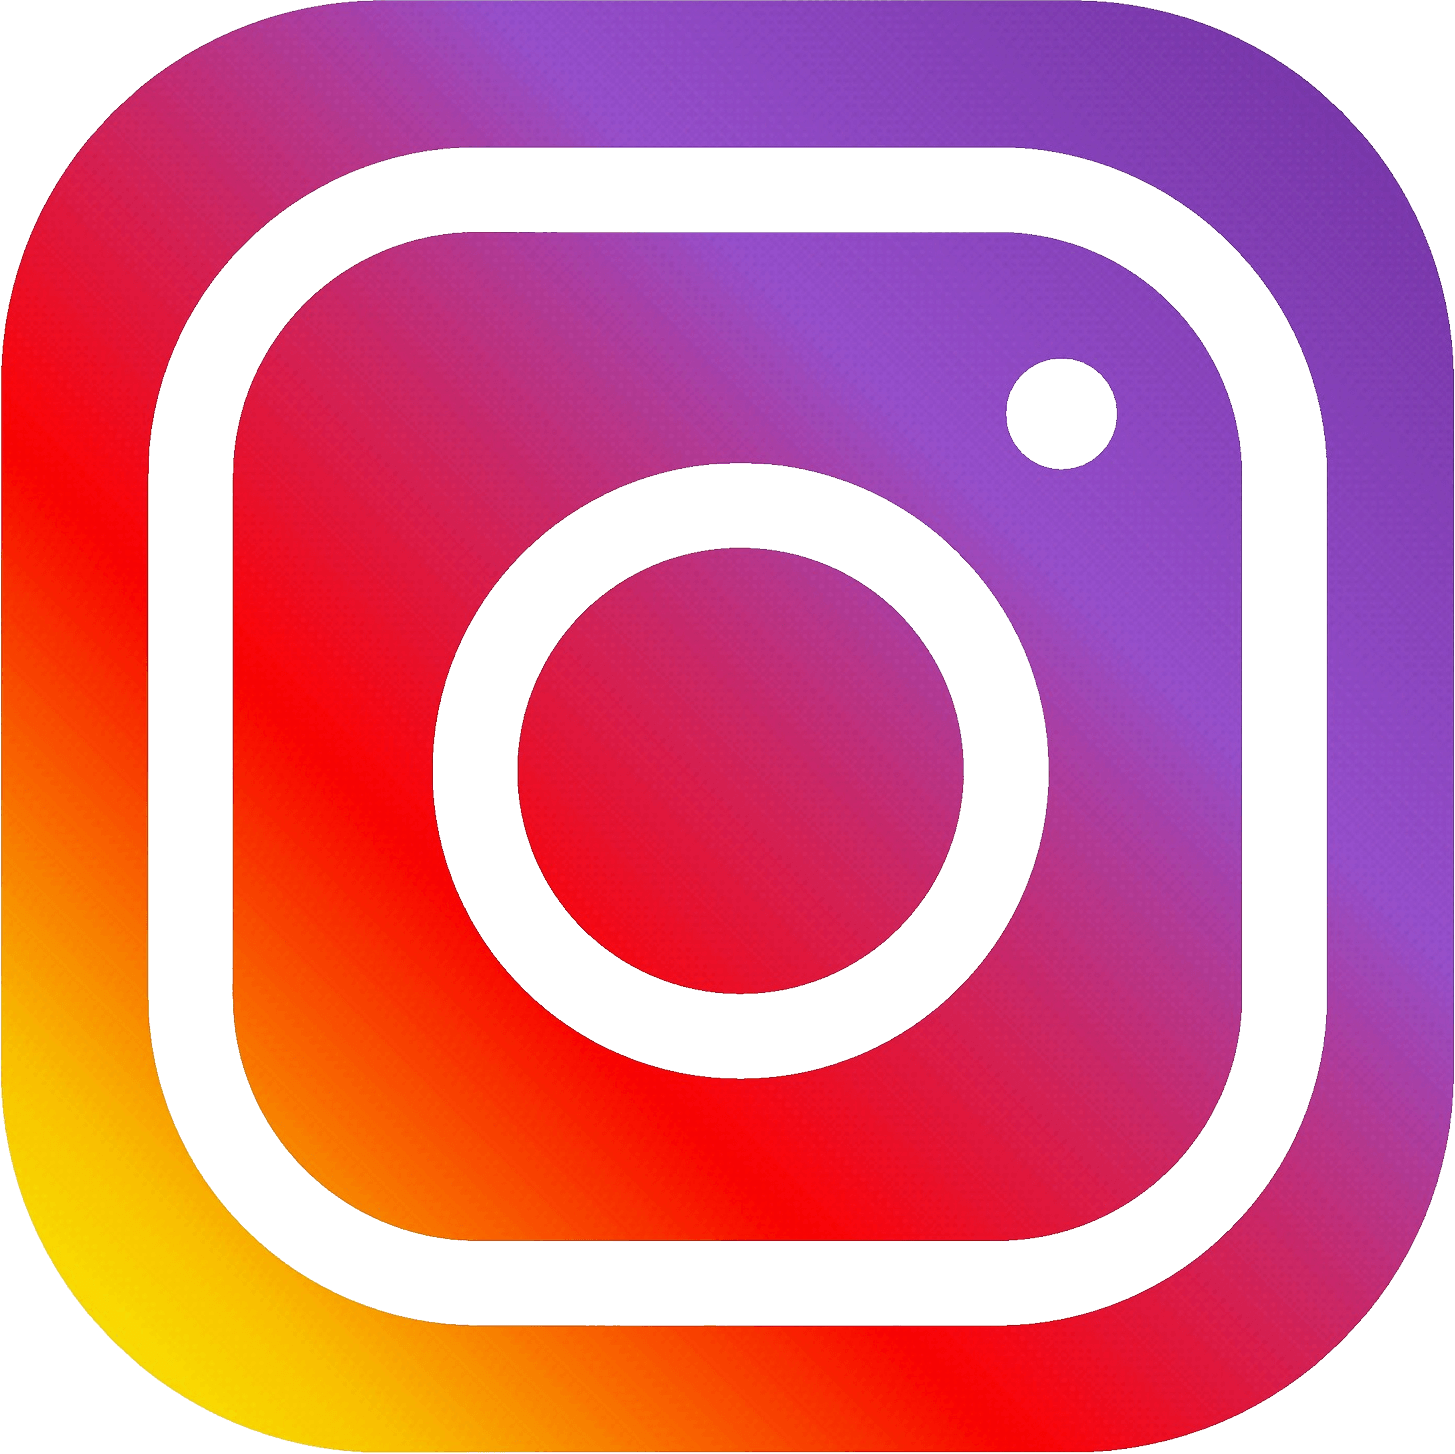 Instagram logo png transparent background. New edigital australia s